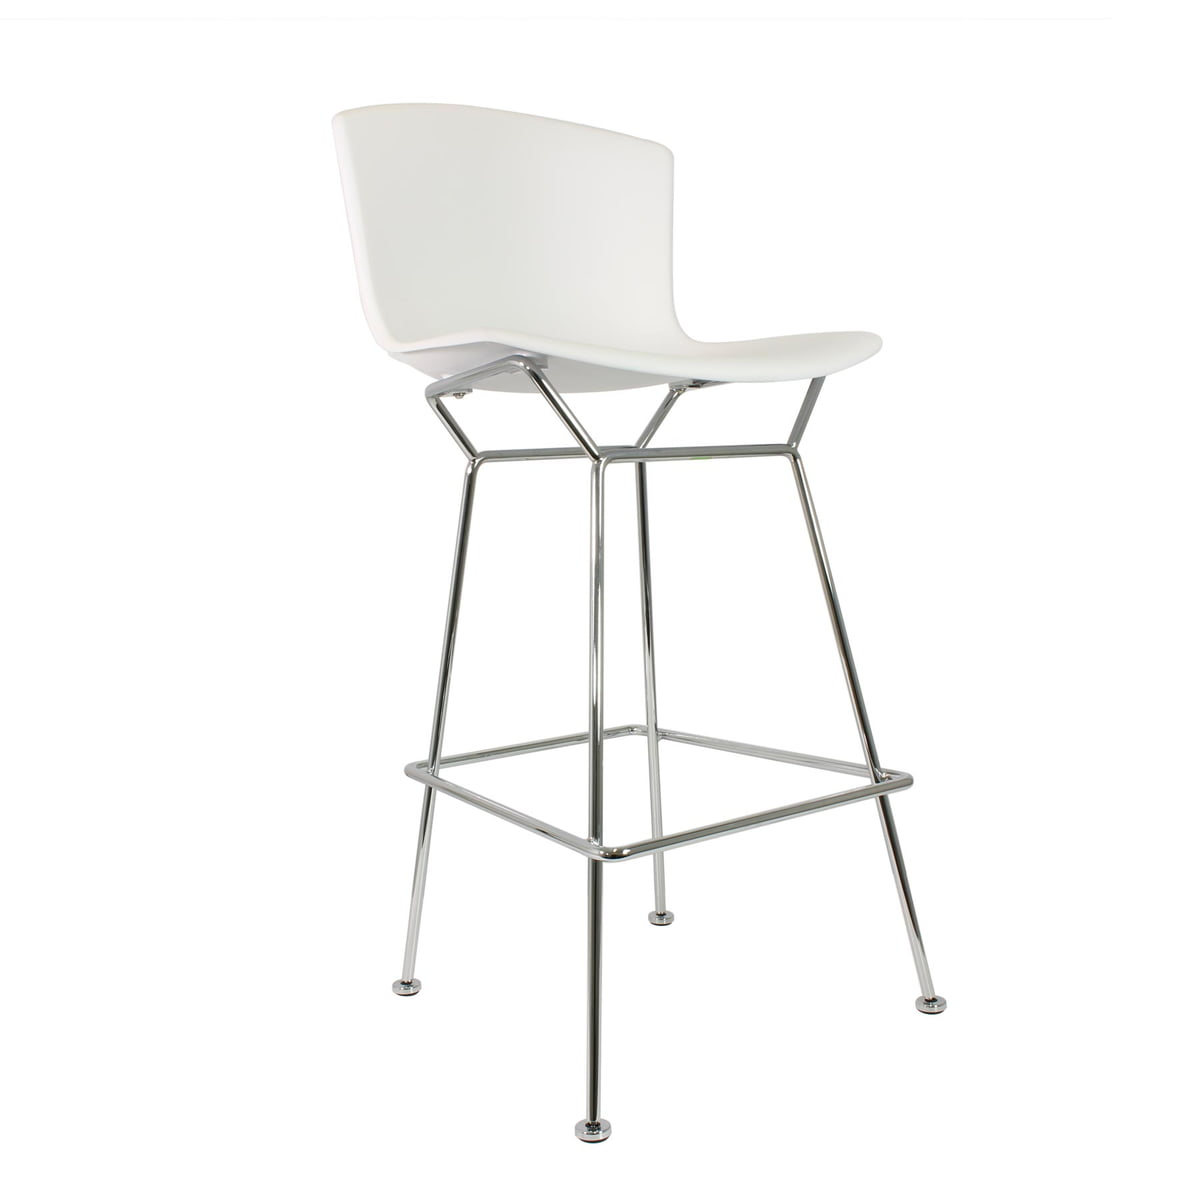 bertoia bar stool by knoll in the shop - knoll  bertoia plastic bar stool whitechrome plated